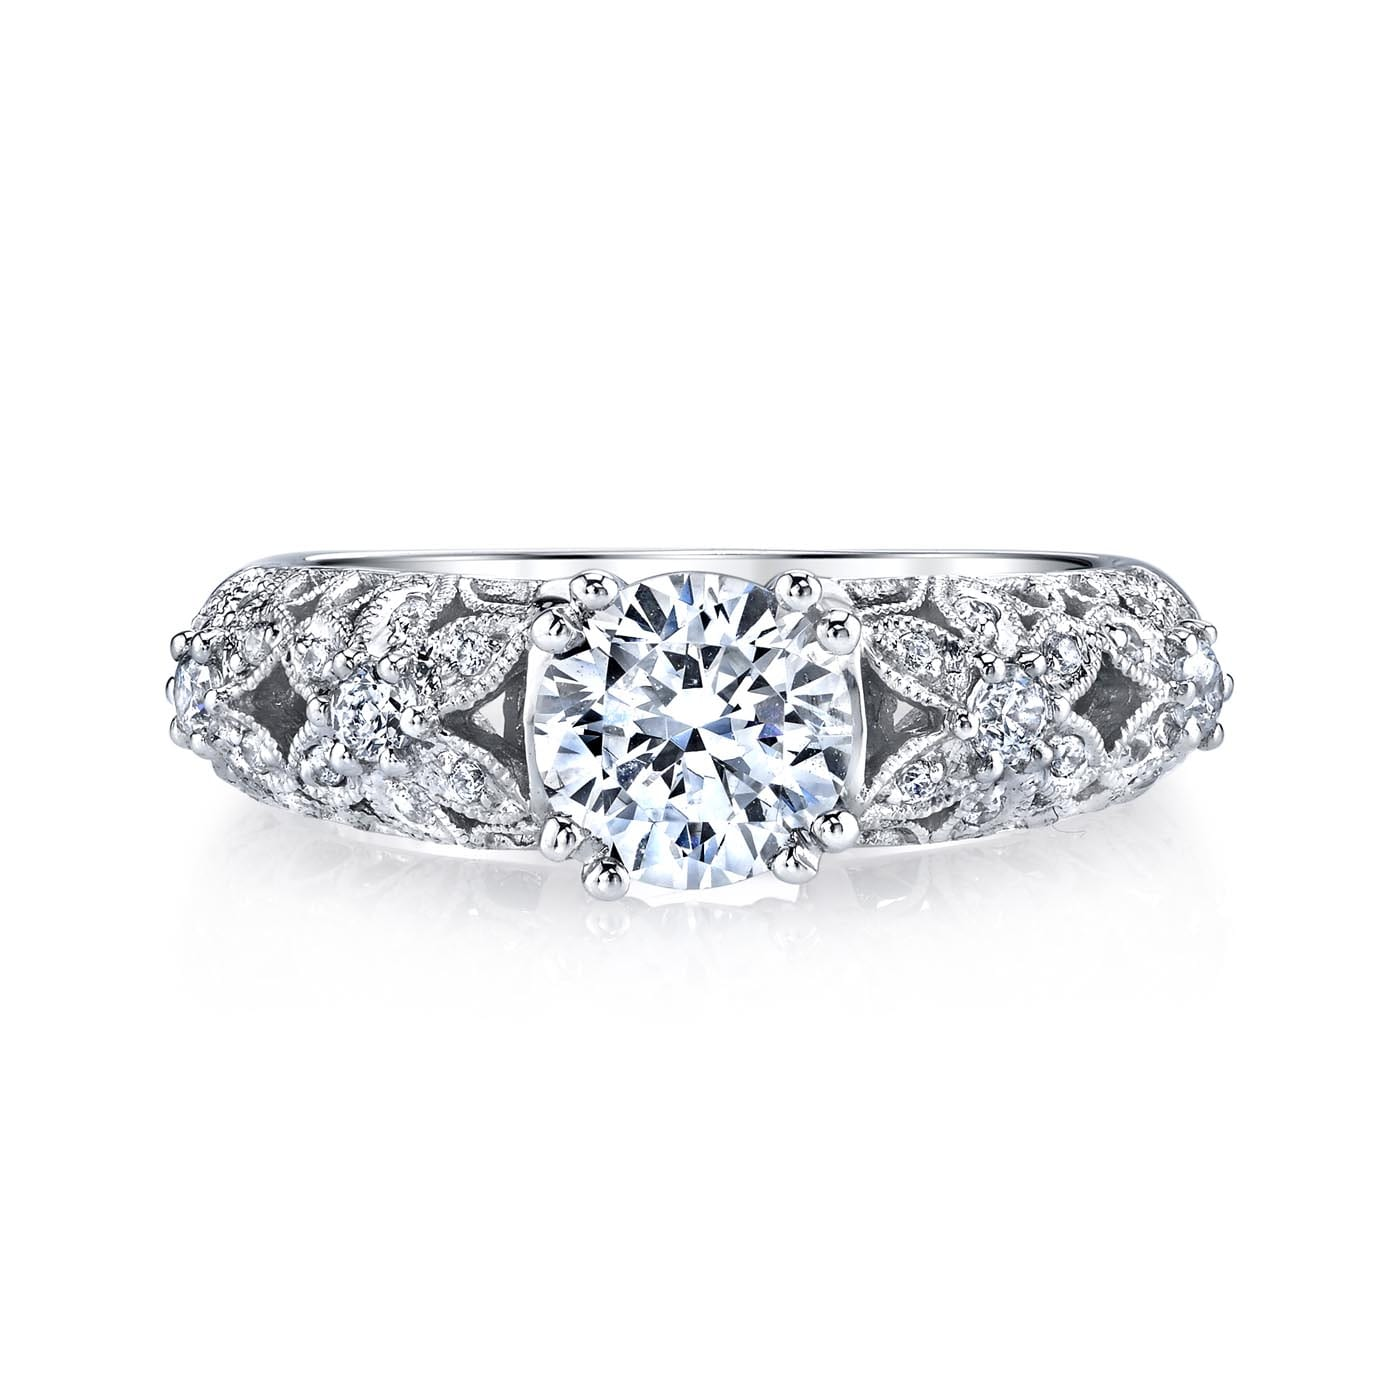 Floral Engagement RingStyle #: MARS 25772